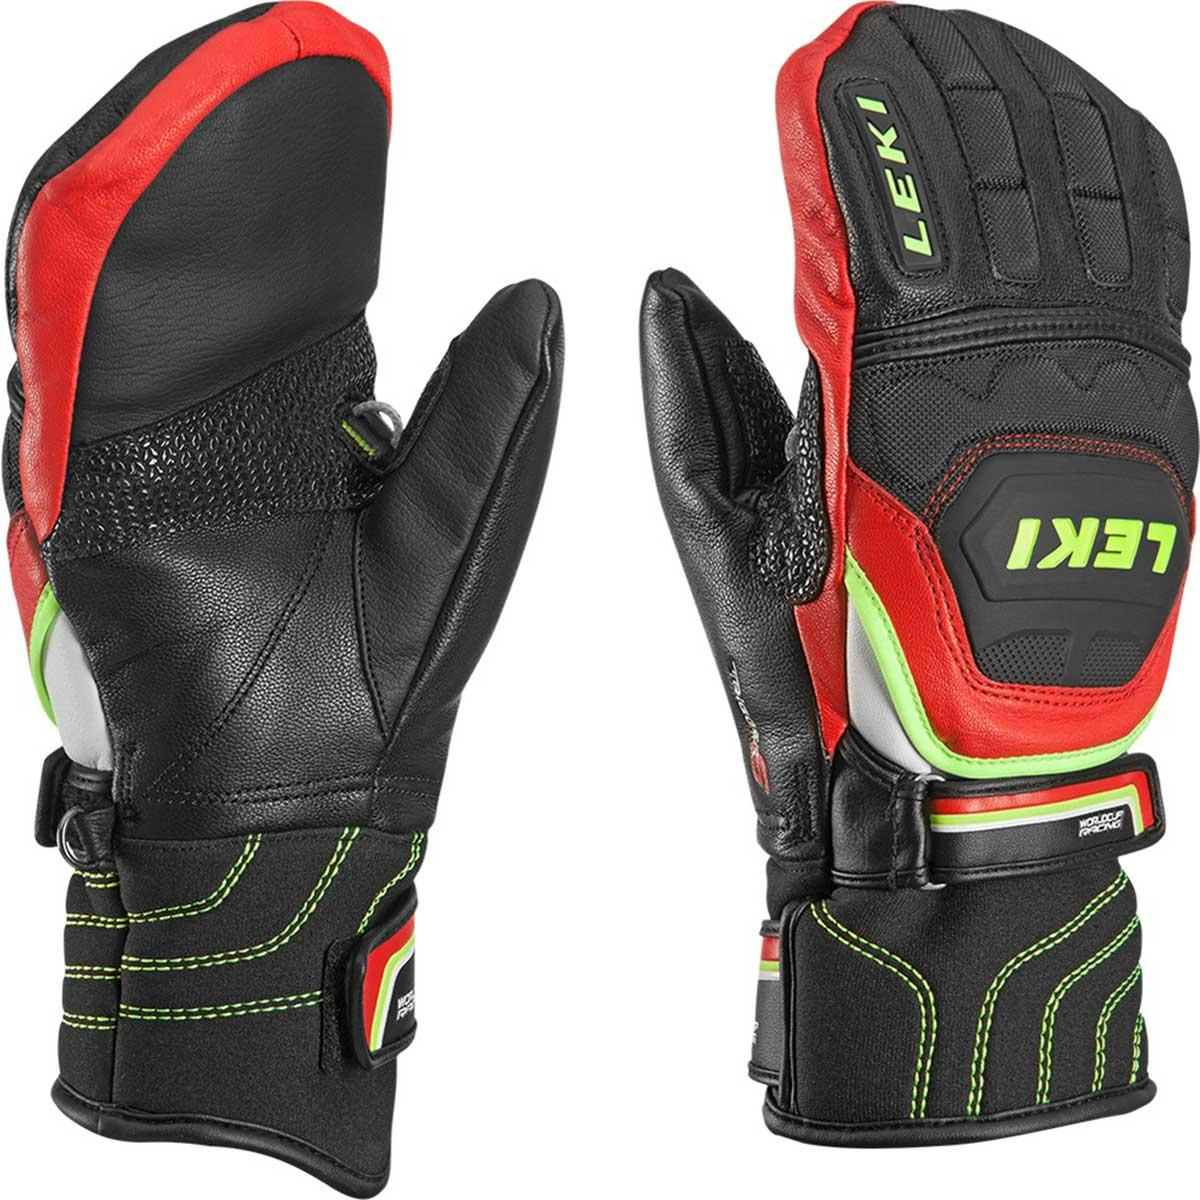 Leki Worldcup Race Flex S JR Mitt in black and red and yellow